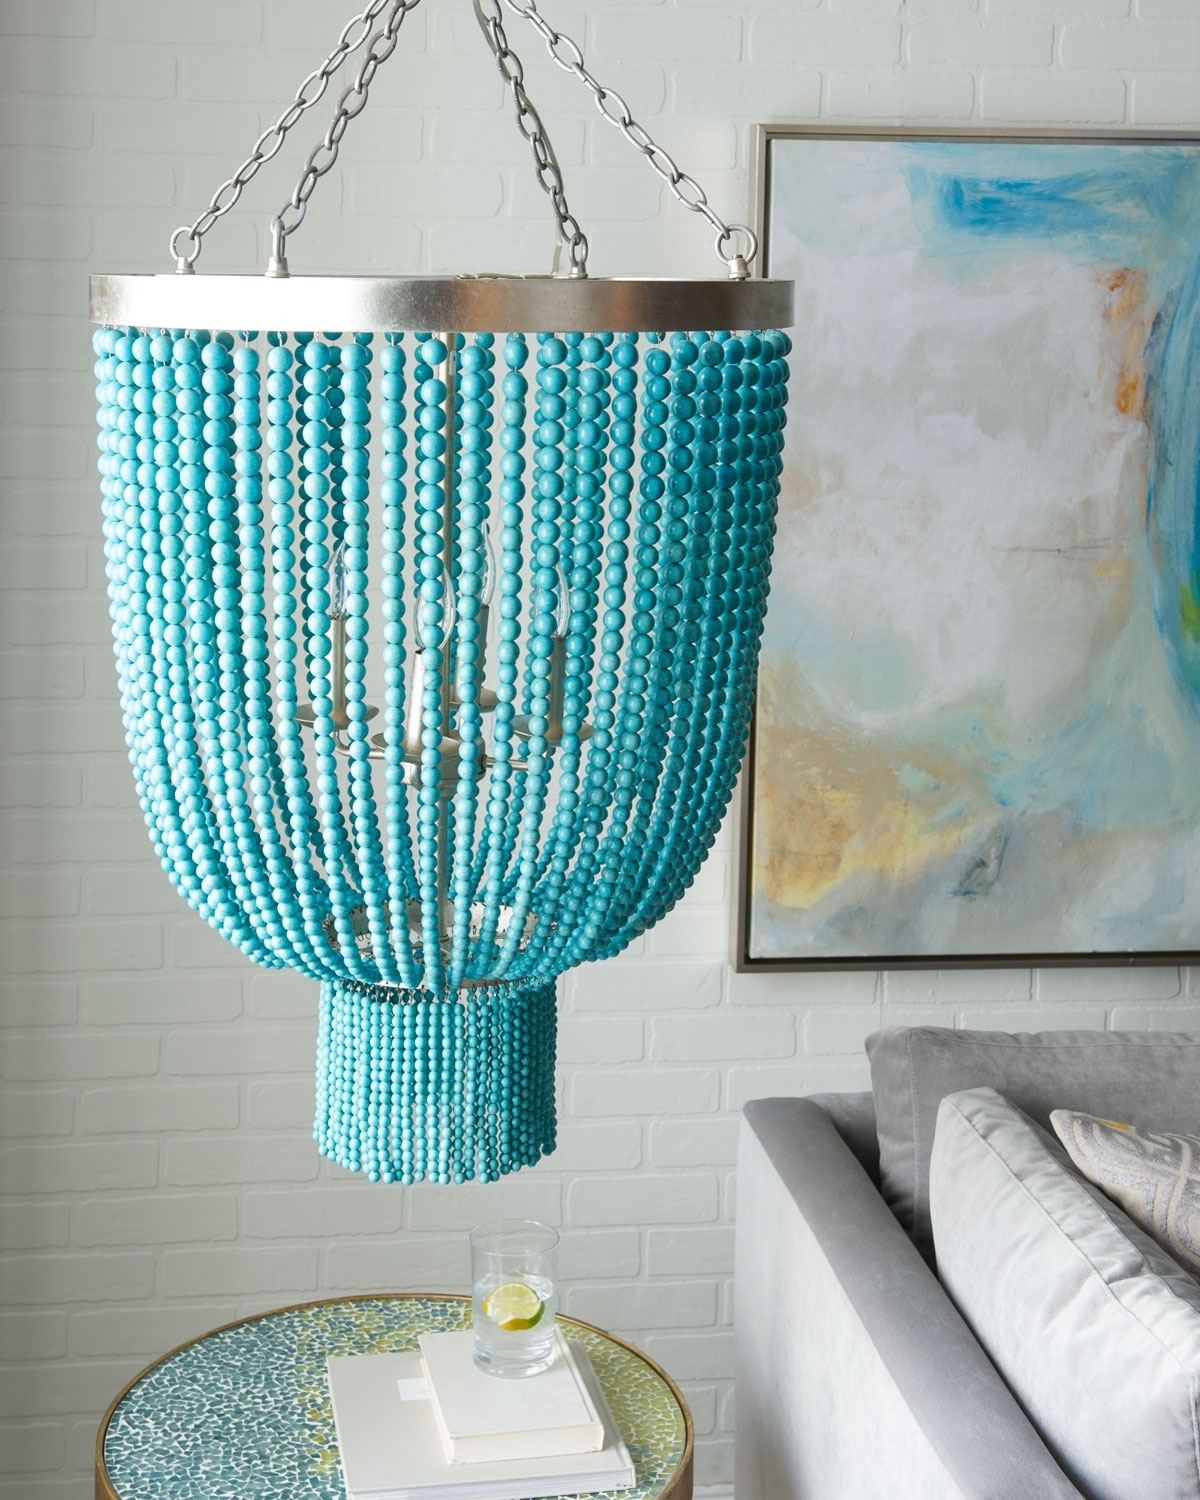 Everything Turquoise with regard to Popular Turquoise Chandelier Lights